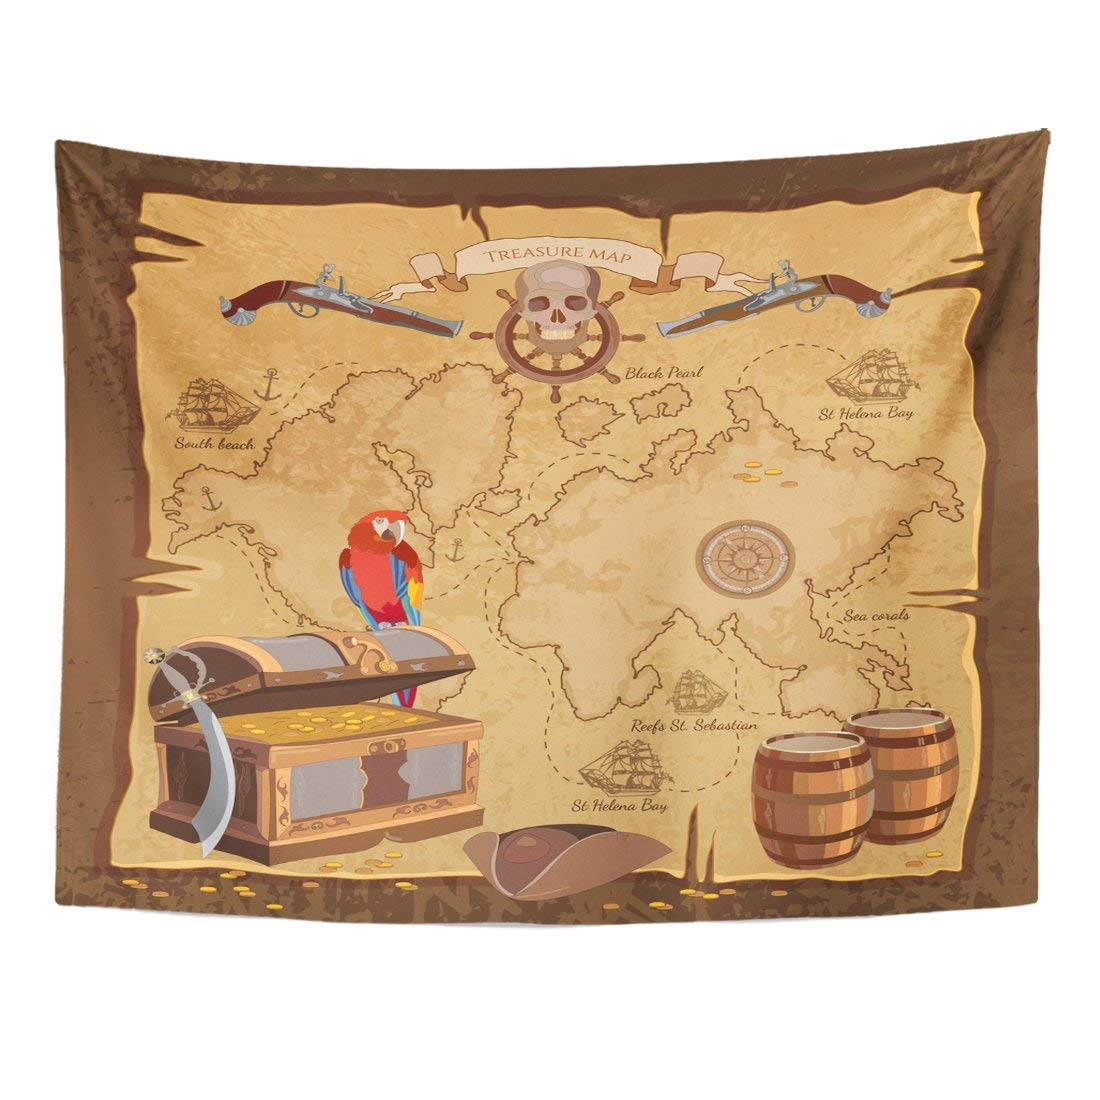 US $15.78 35% OFF|Tapestry Game Old Pirate Treasure Map Chest Parrot on map desk, map calf, map brain, map furniture, map roman britain, map table, map cabinet, map face, map of pinconning michigan, map clothing, map heart, map hands, map of cheat lake wv, map tongue, map drawers, map of lakes in france, map of alton illinois area, map compass north, map box,